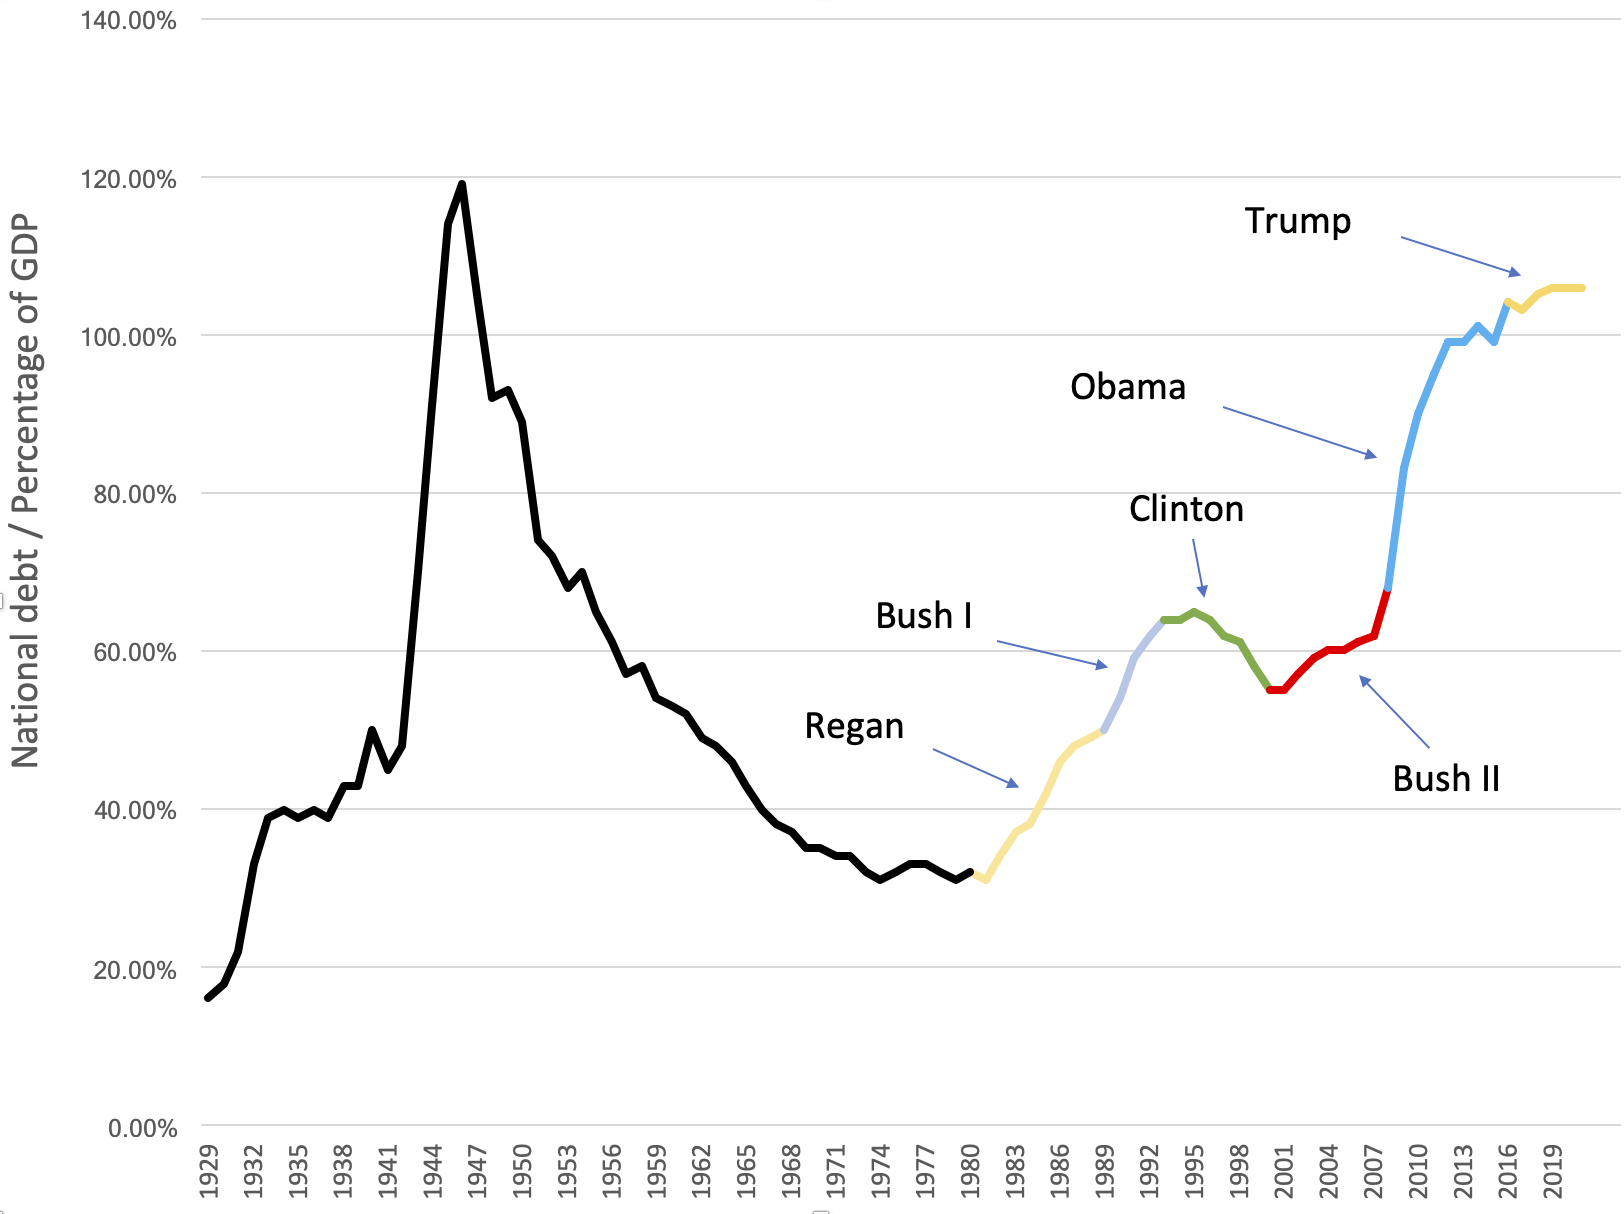 National debt as a proportion of GDP, from the 1930s to the present